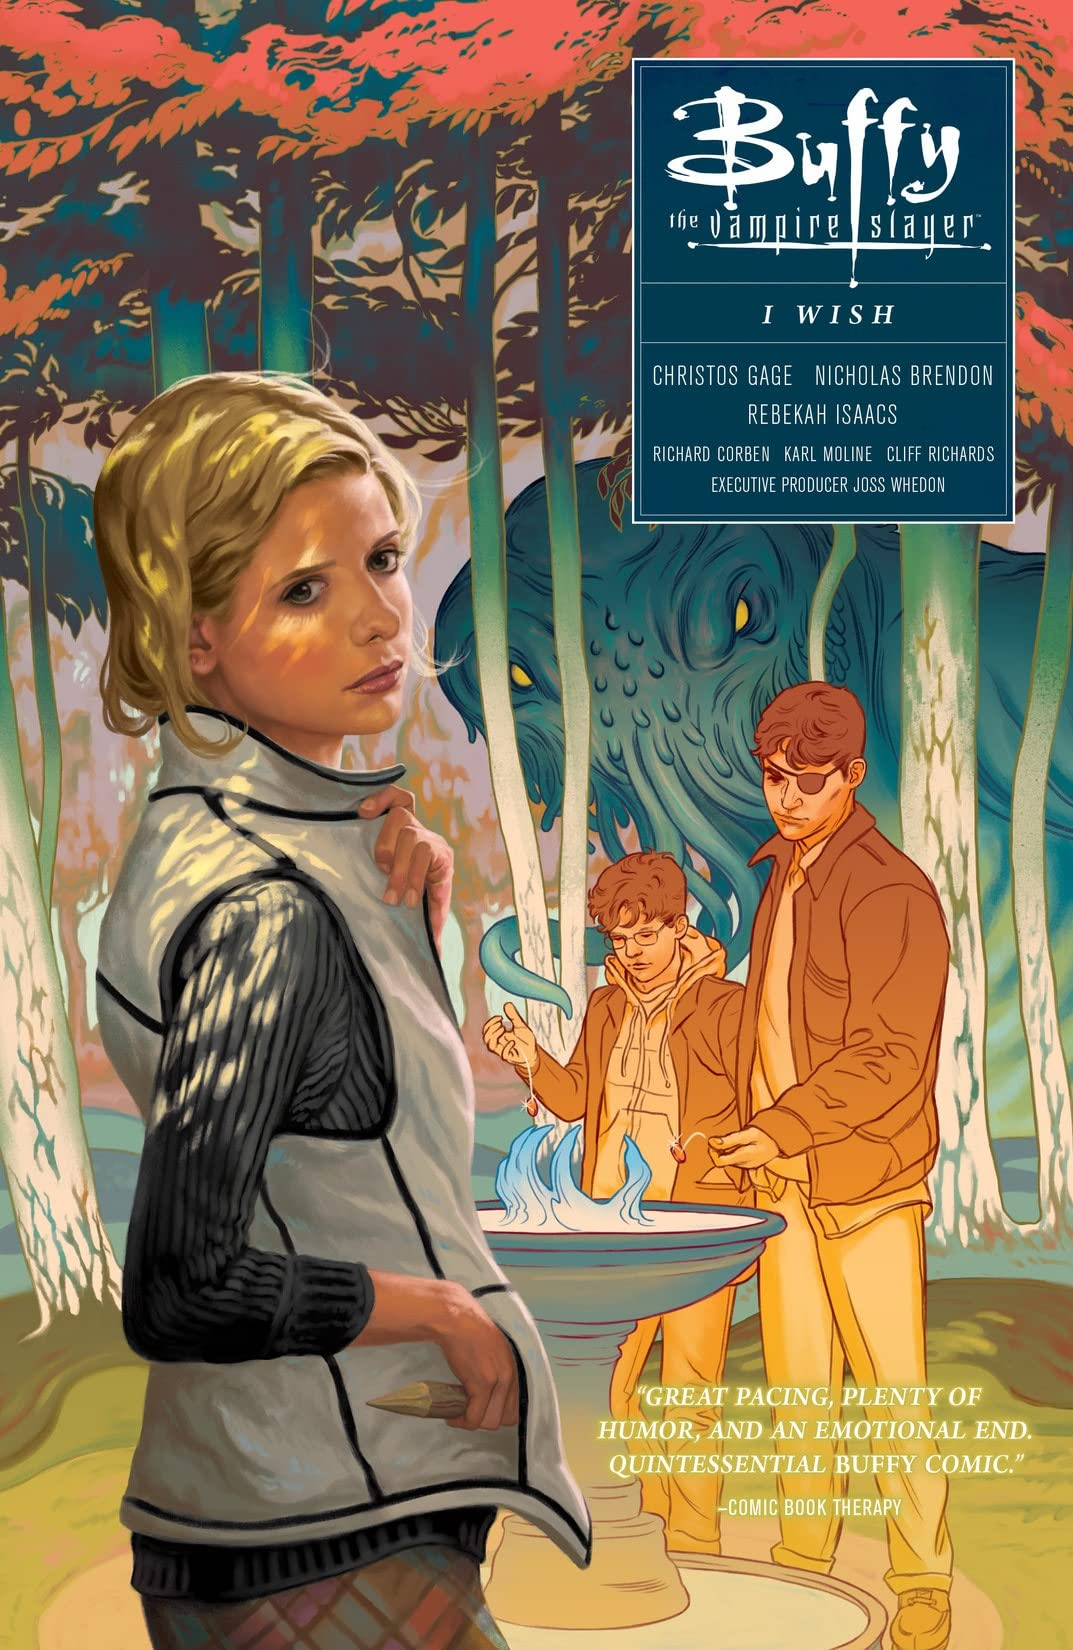 Buffy the Vampire Slayer: Season 10 Vol. 2: I Wish